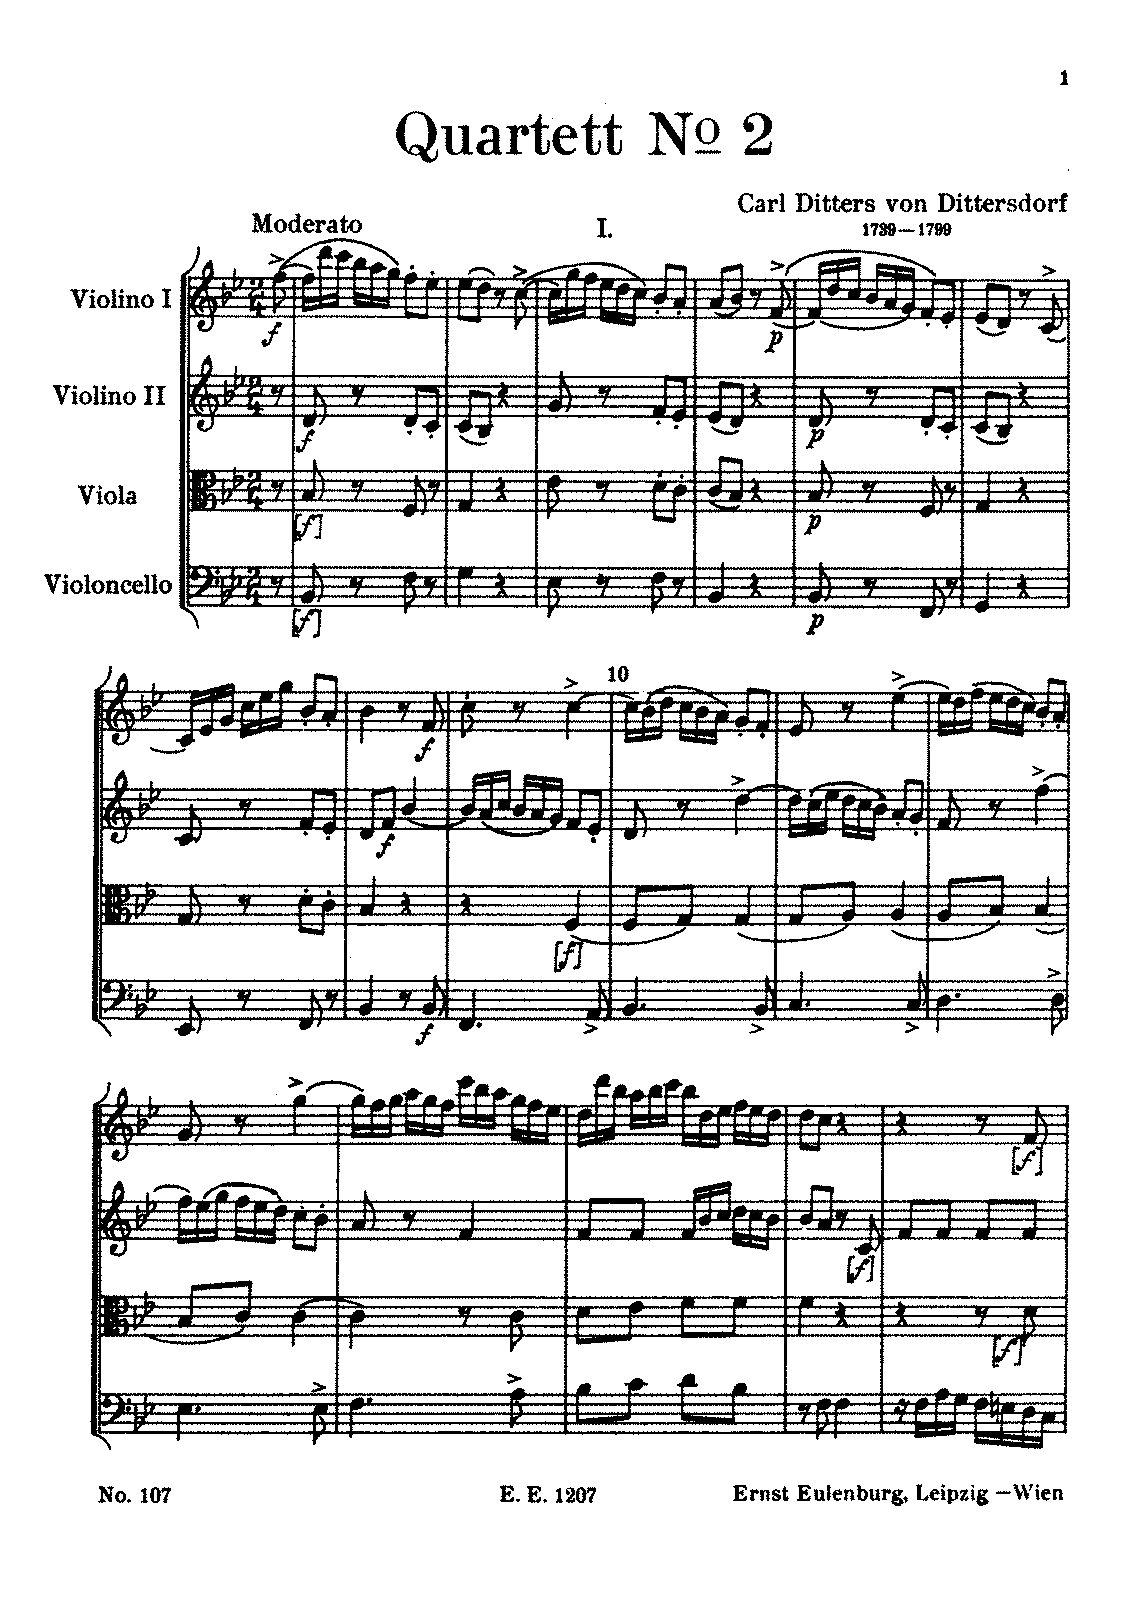 Dittersdorf String Quartet No.2 in B Flat.pdf